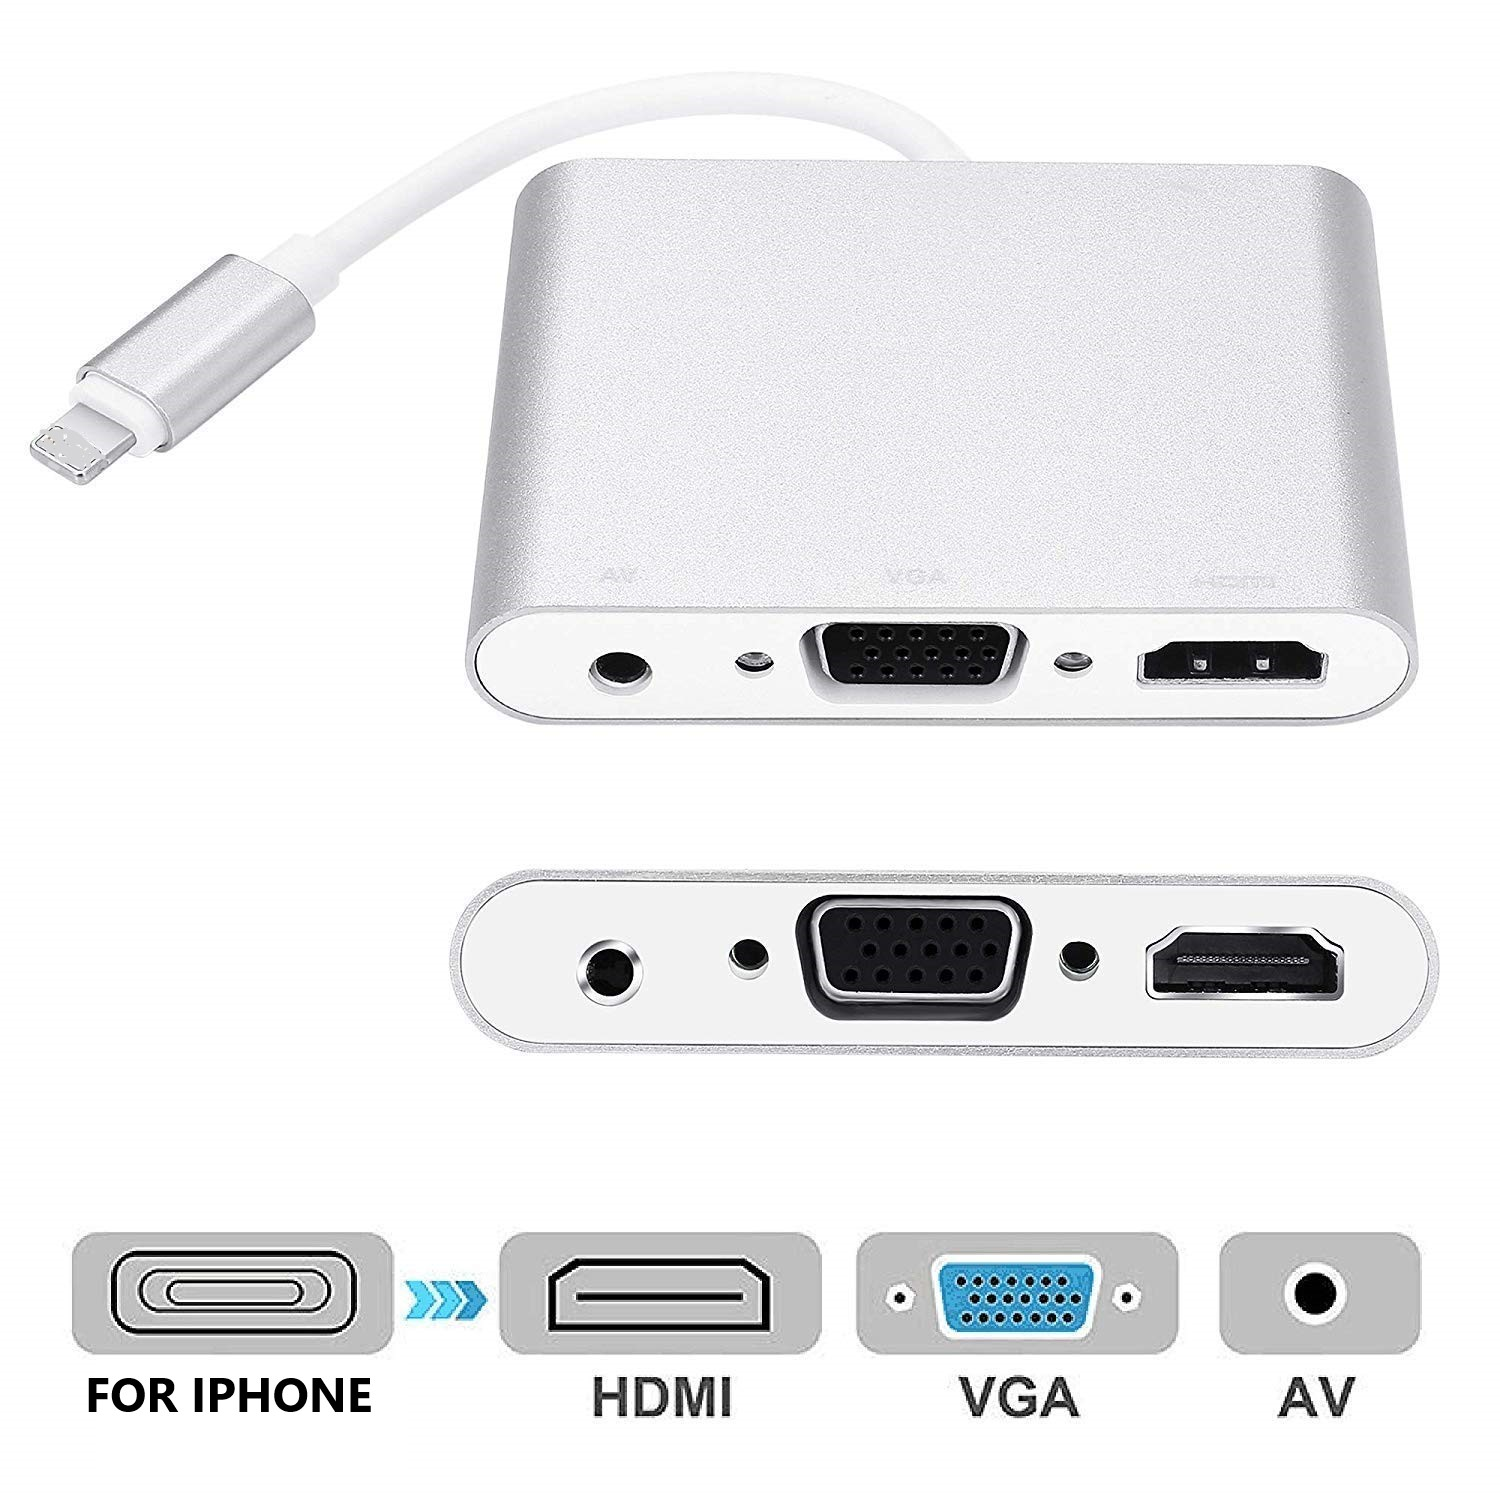 4 In1 Digital Audio Video HDTV Konverter für IPhone Zu HDMI VGA AV Adapter für IPhone Xs X XR 8 7 6plus für IPad Air/mini/pro